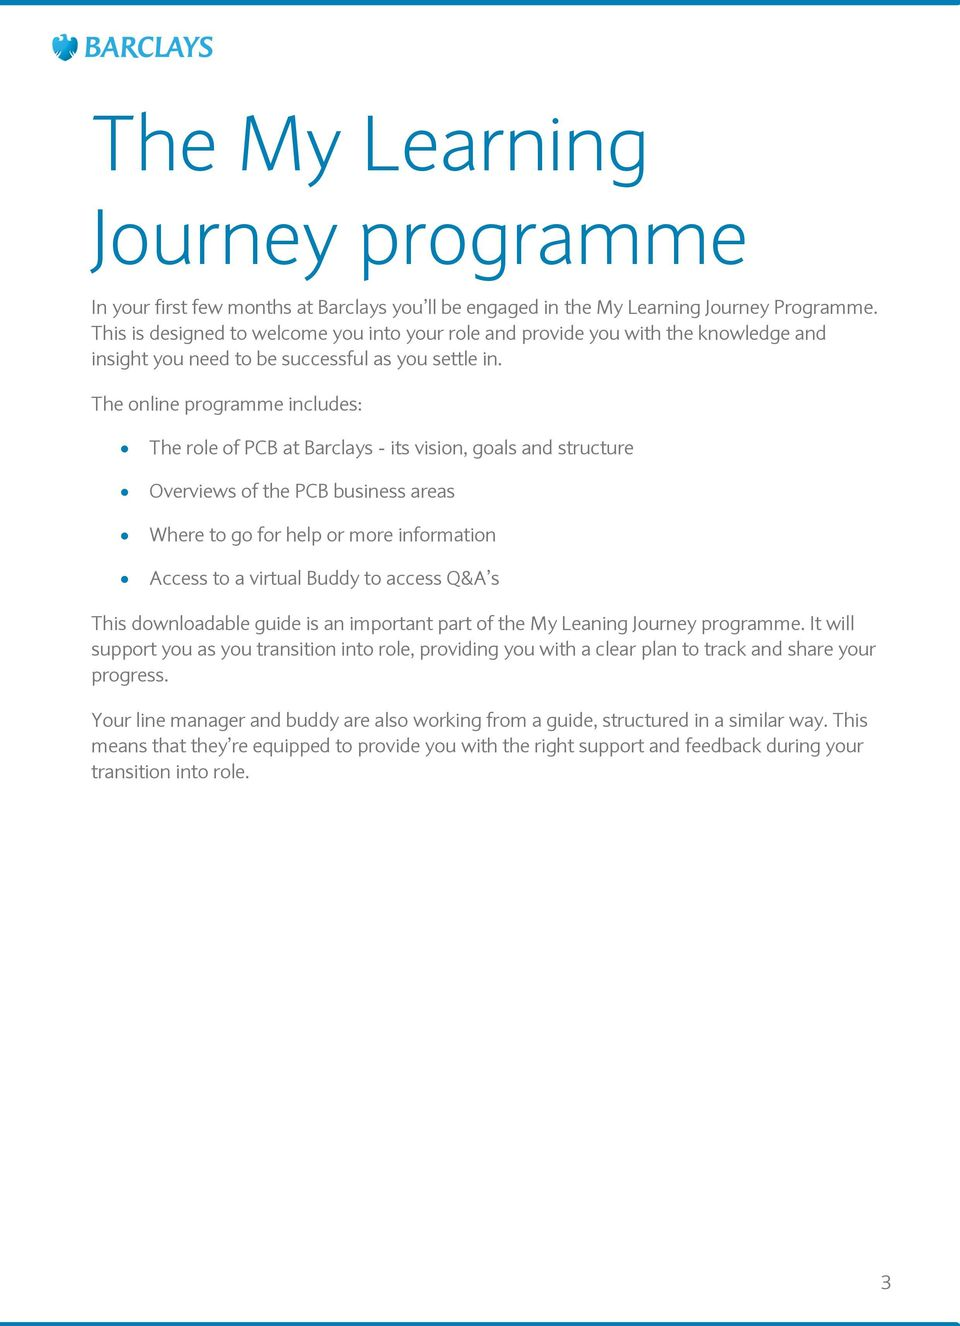 The online programme includes: The role of PCB at Barclays - its vision, goals and structure Overviews of the PCB business areas Where to go for help or more information Access to a virtual Buddy to